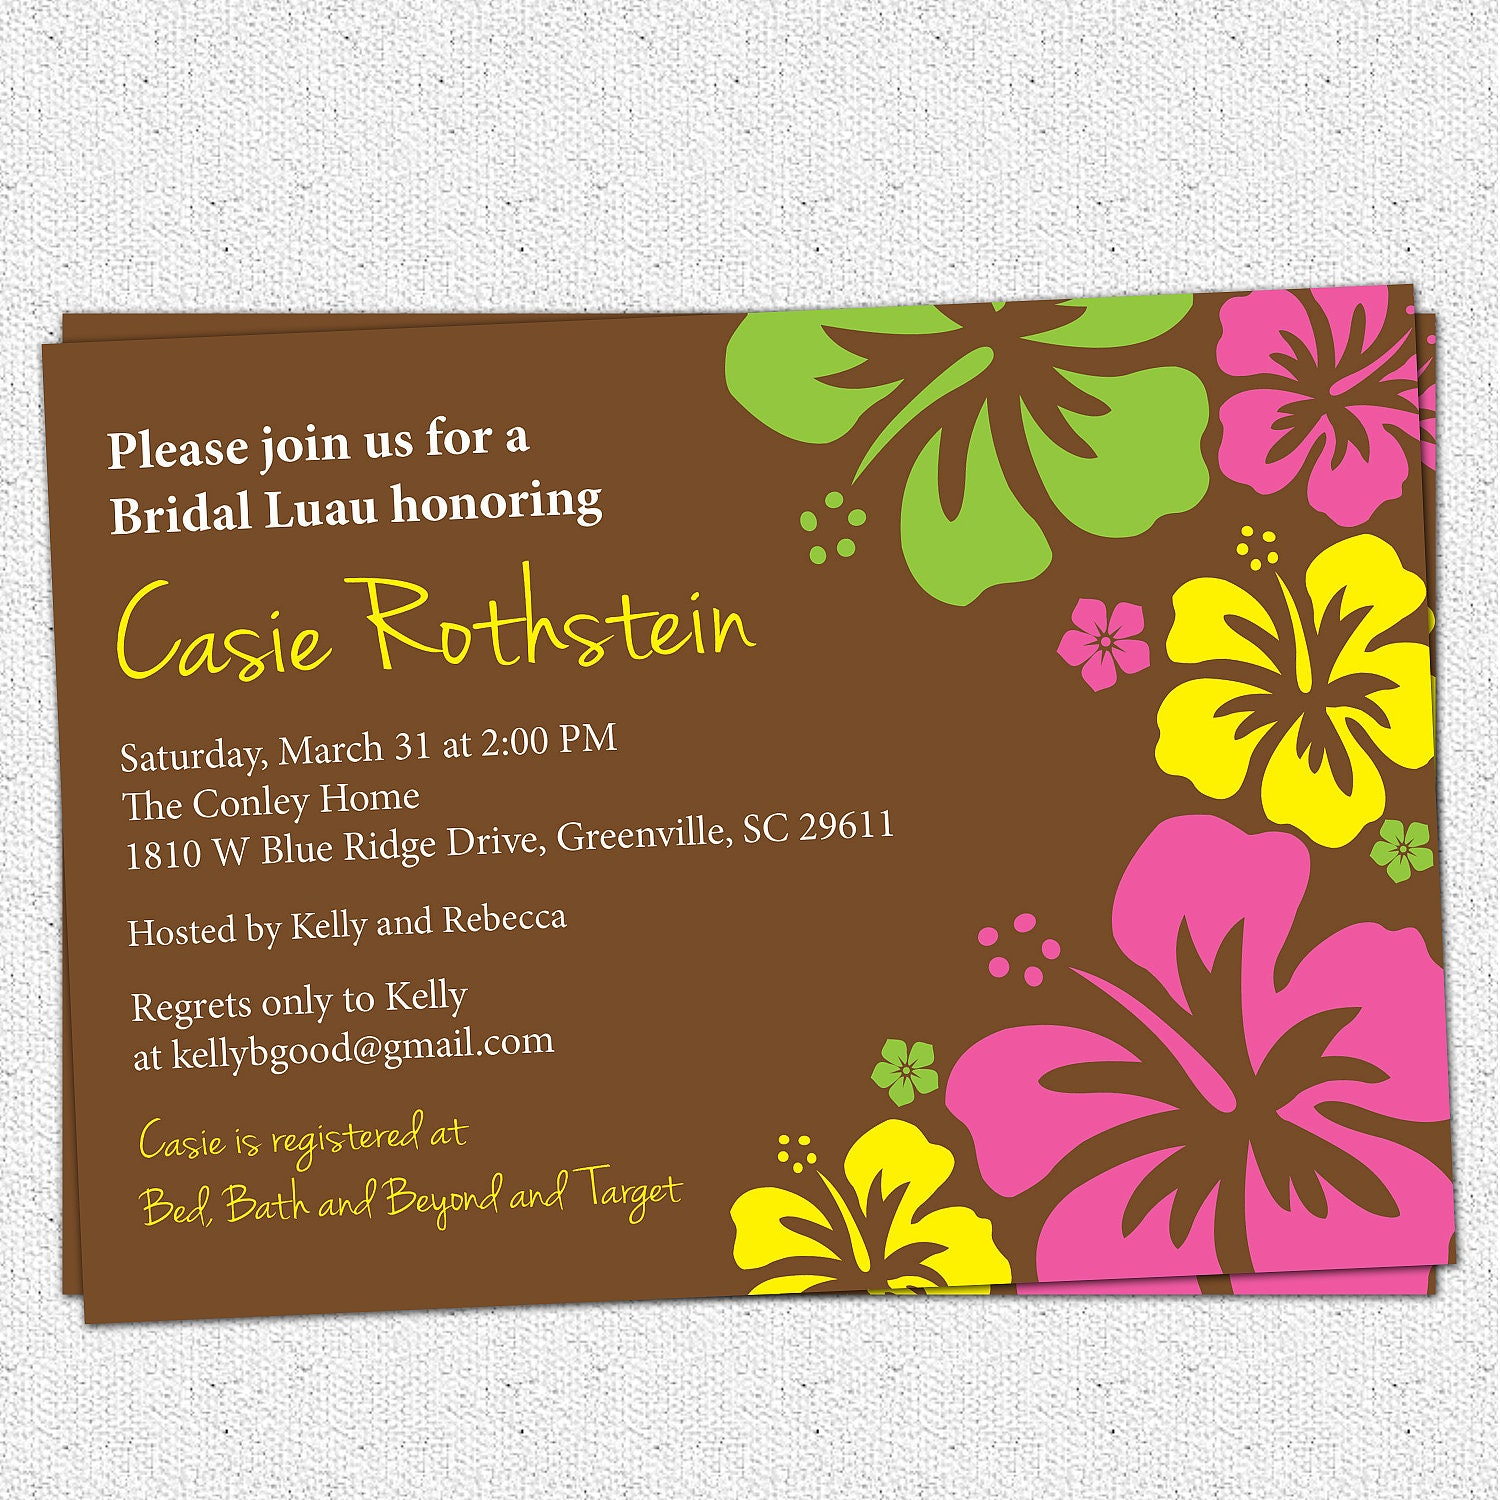 Bridal Shower Invitations Luau Bridal Shower Invitations Free